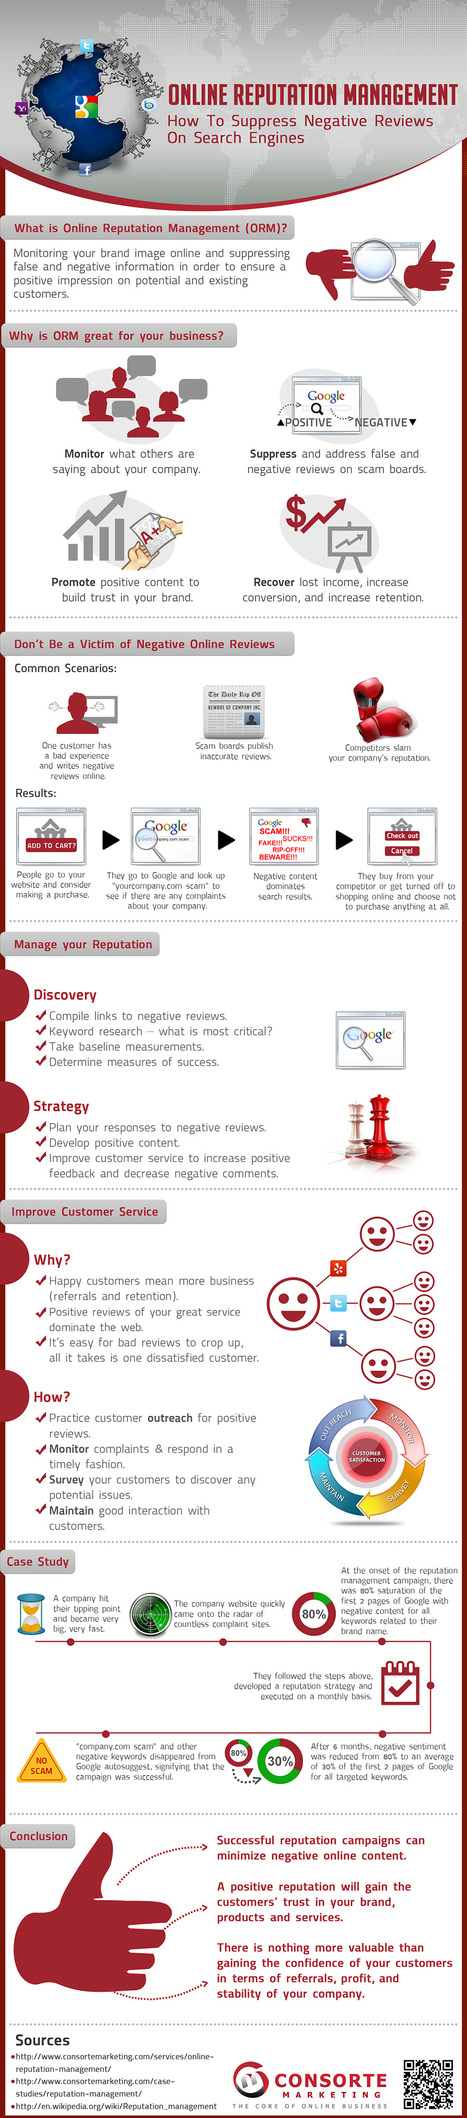 Online reputation management [Infographic] | Time to Learn | Scoop.it